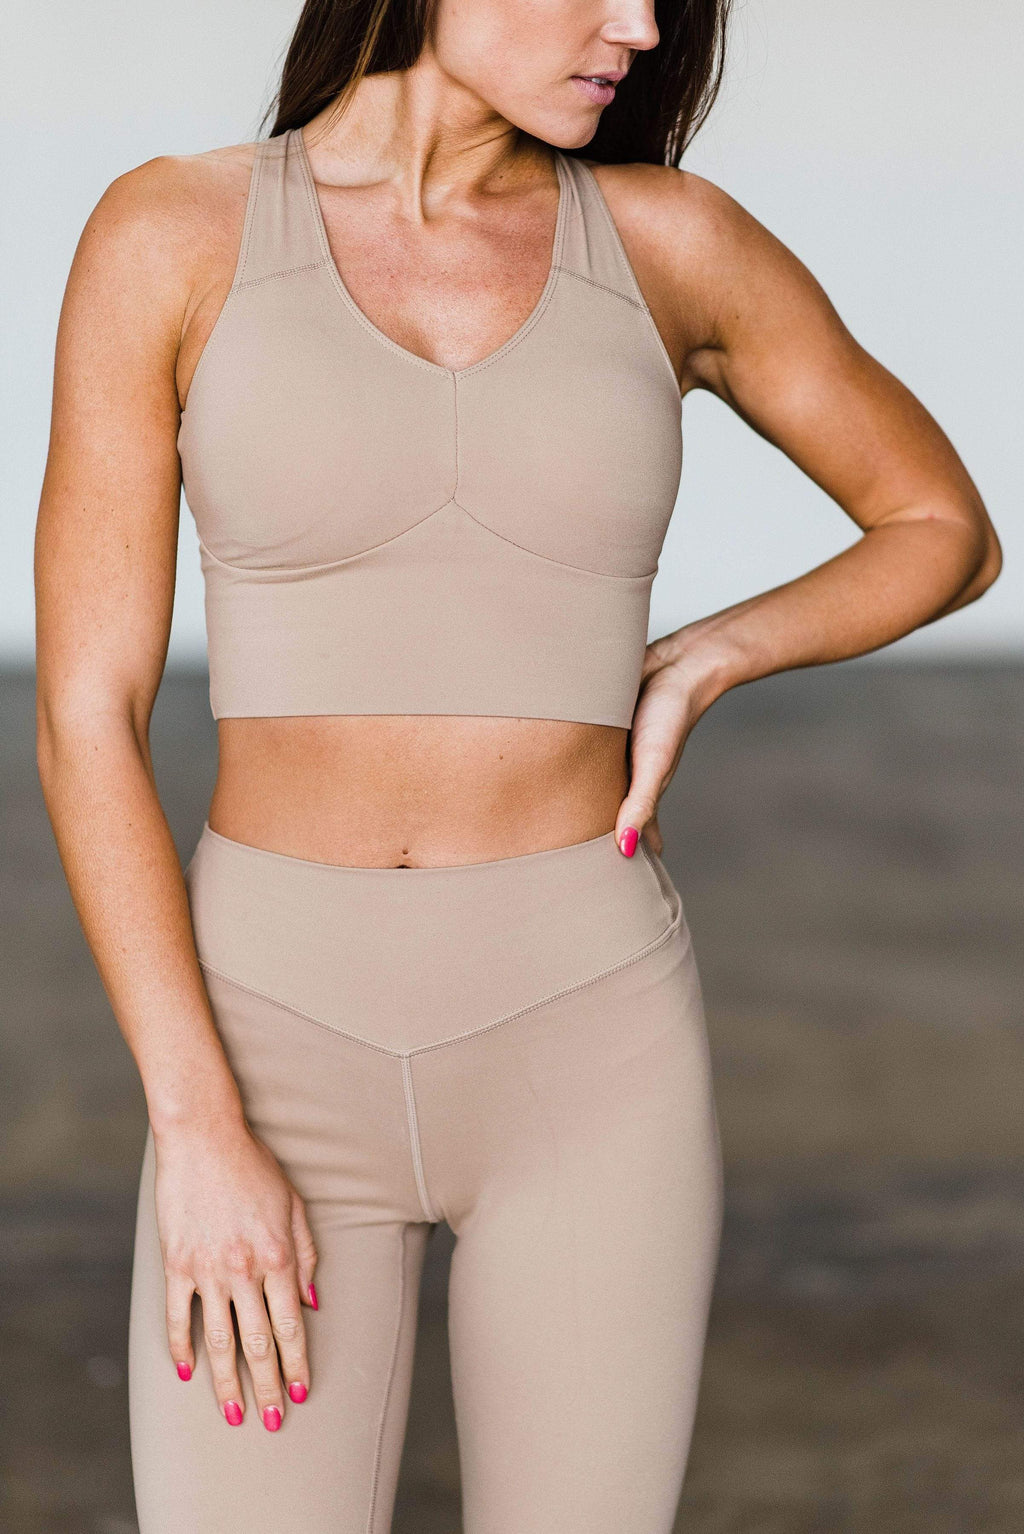 Balance Athletica Tops XS The Define Top - Sand 101SA-XS